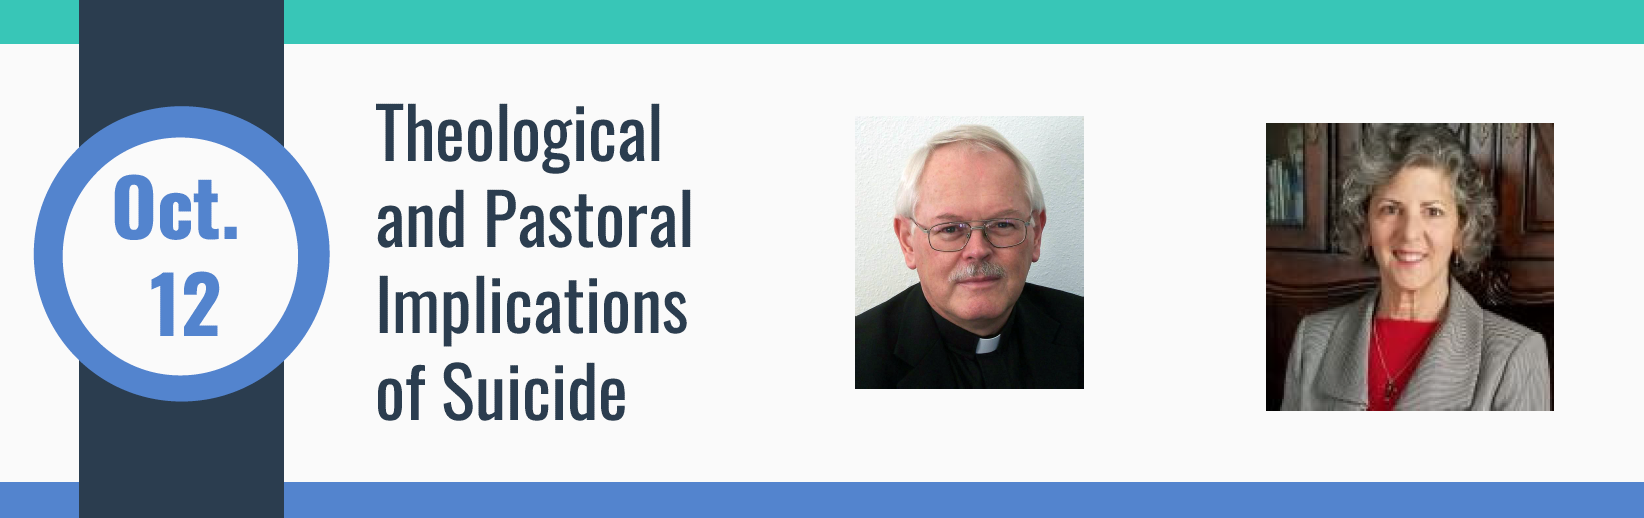 October 12 - Theological and Pastoral Implications of Suicide